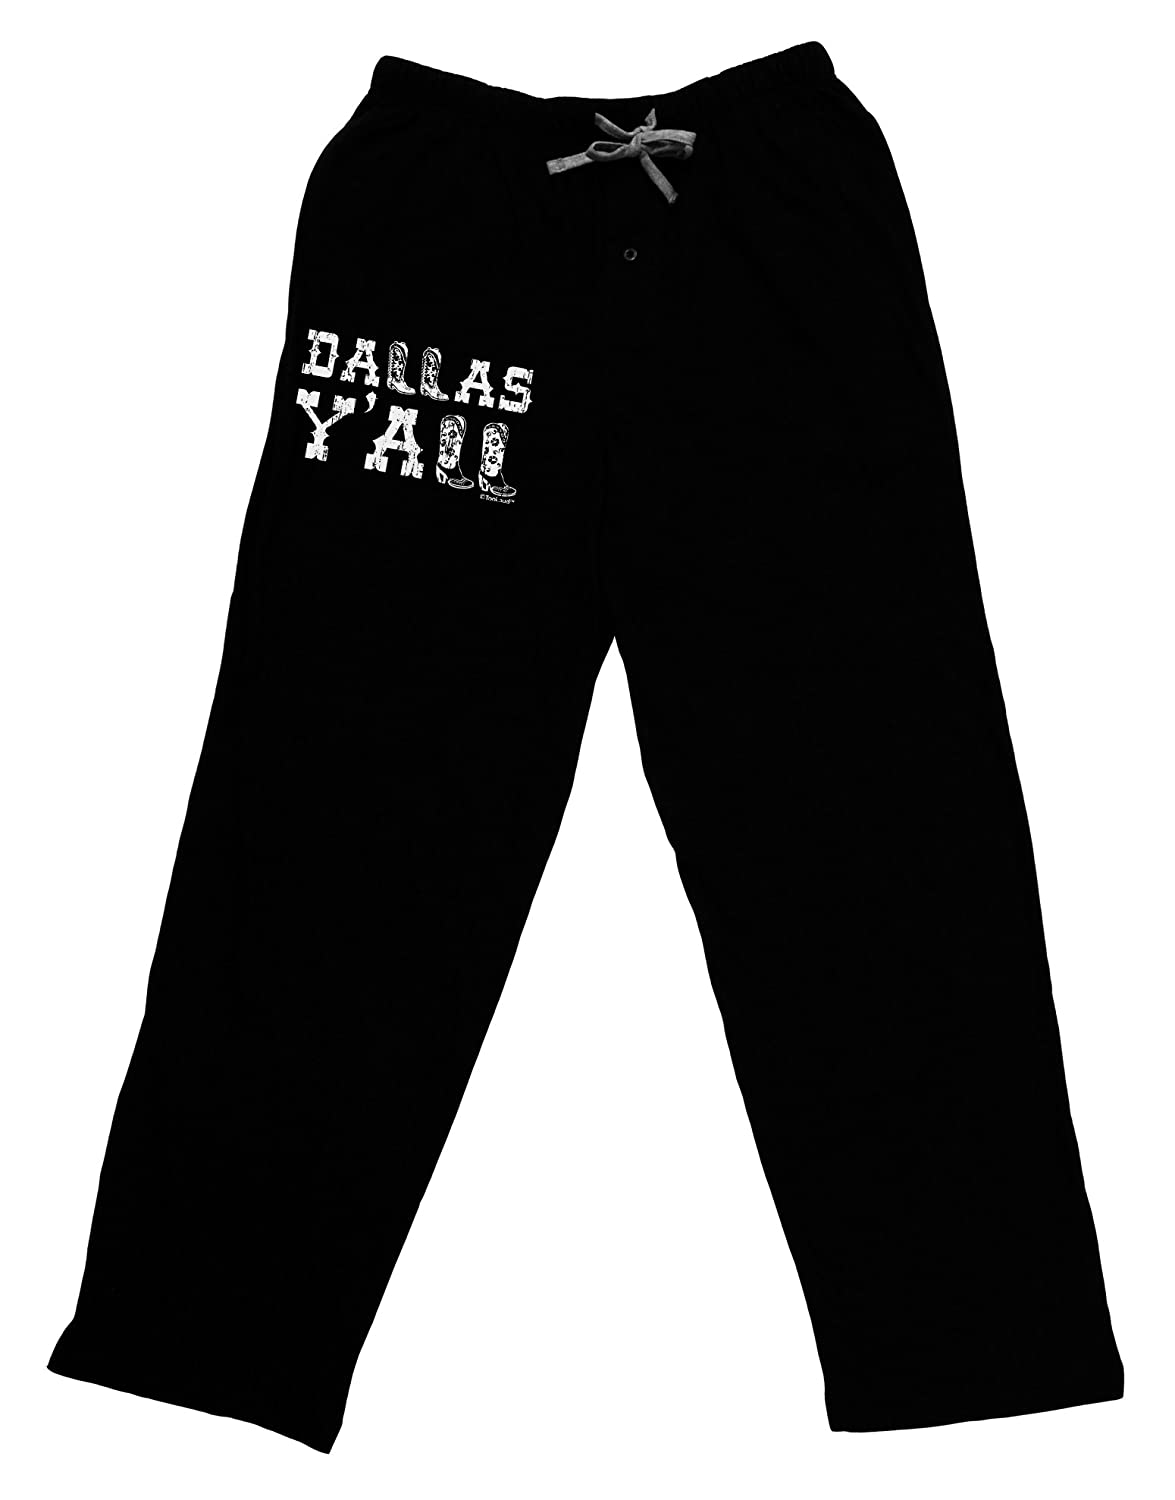 TOOLOUD Dallas Y'all - Boots - Texas Pride Adult Lounge Pants - Black UR7891W-TOLD-DRKLNGPNT-P